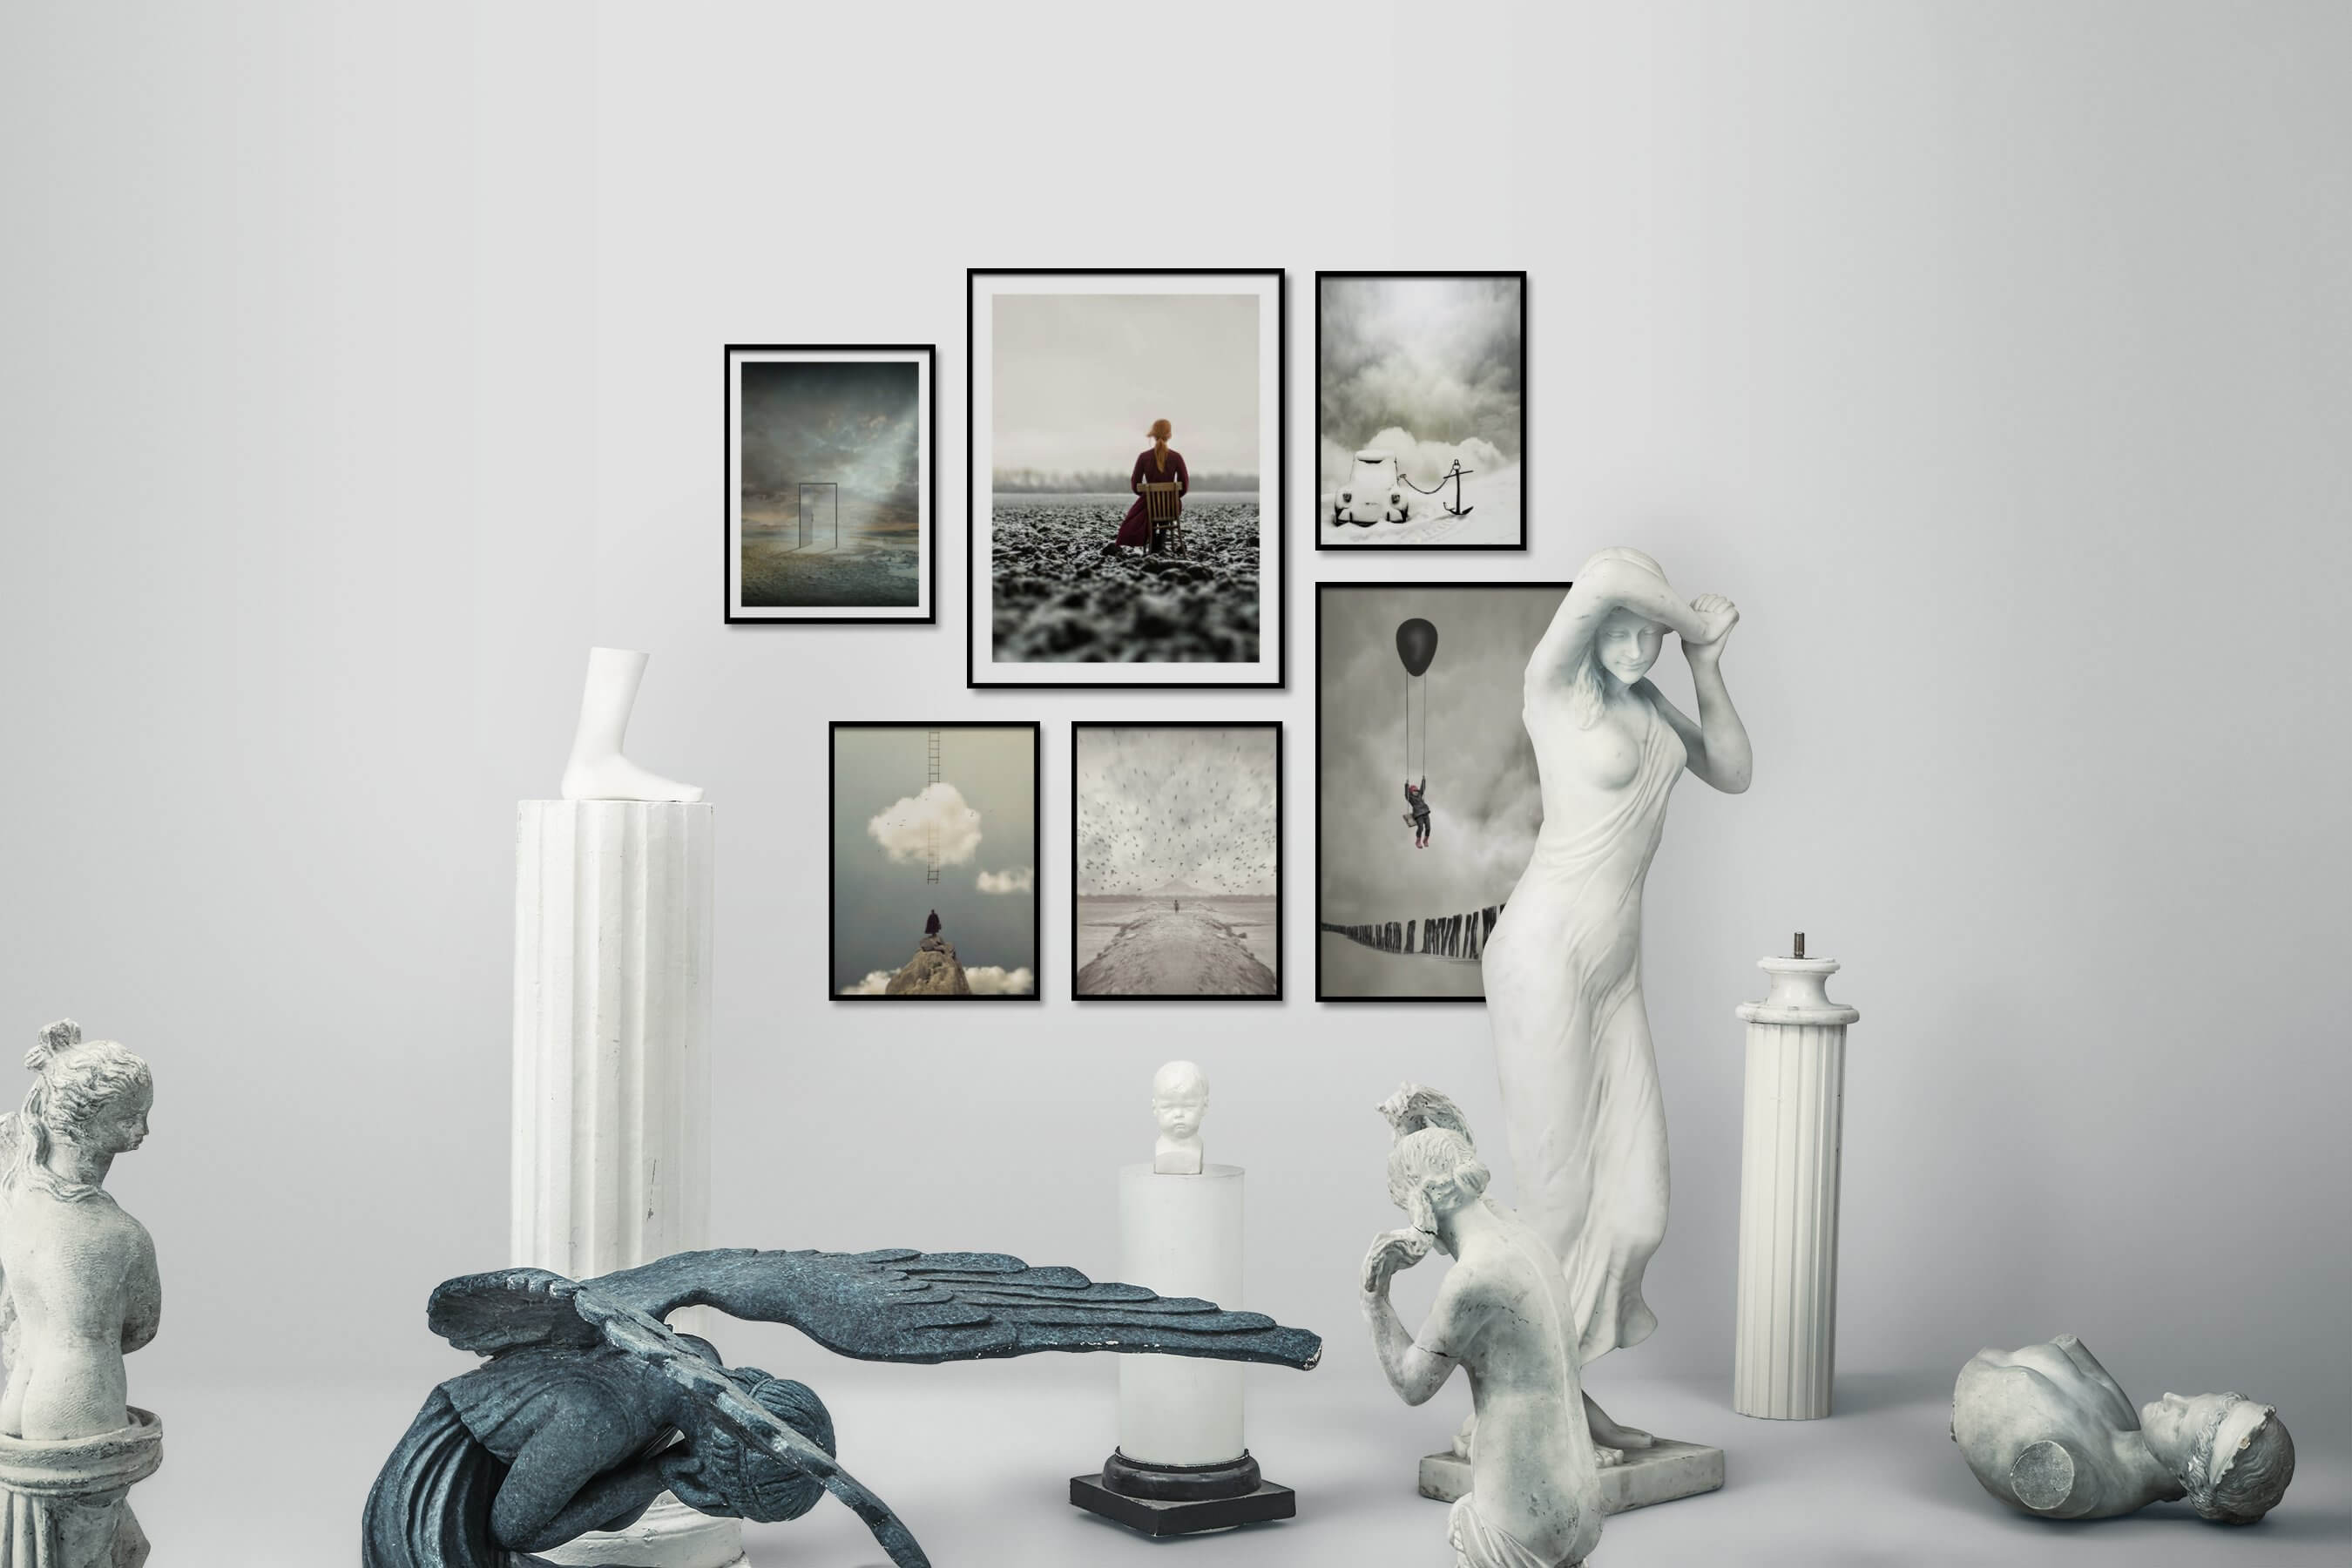 Gallery wall idea with six framed pictures arranged on a wall depicting Artsy, Mindfulness, Country Life, Nature, and For the Moderate